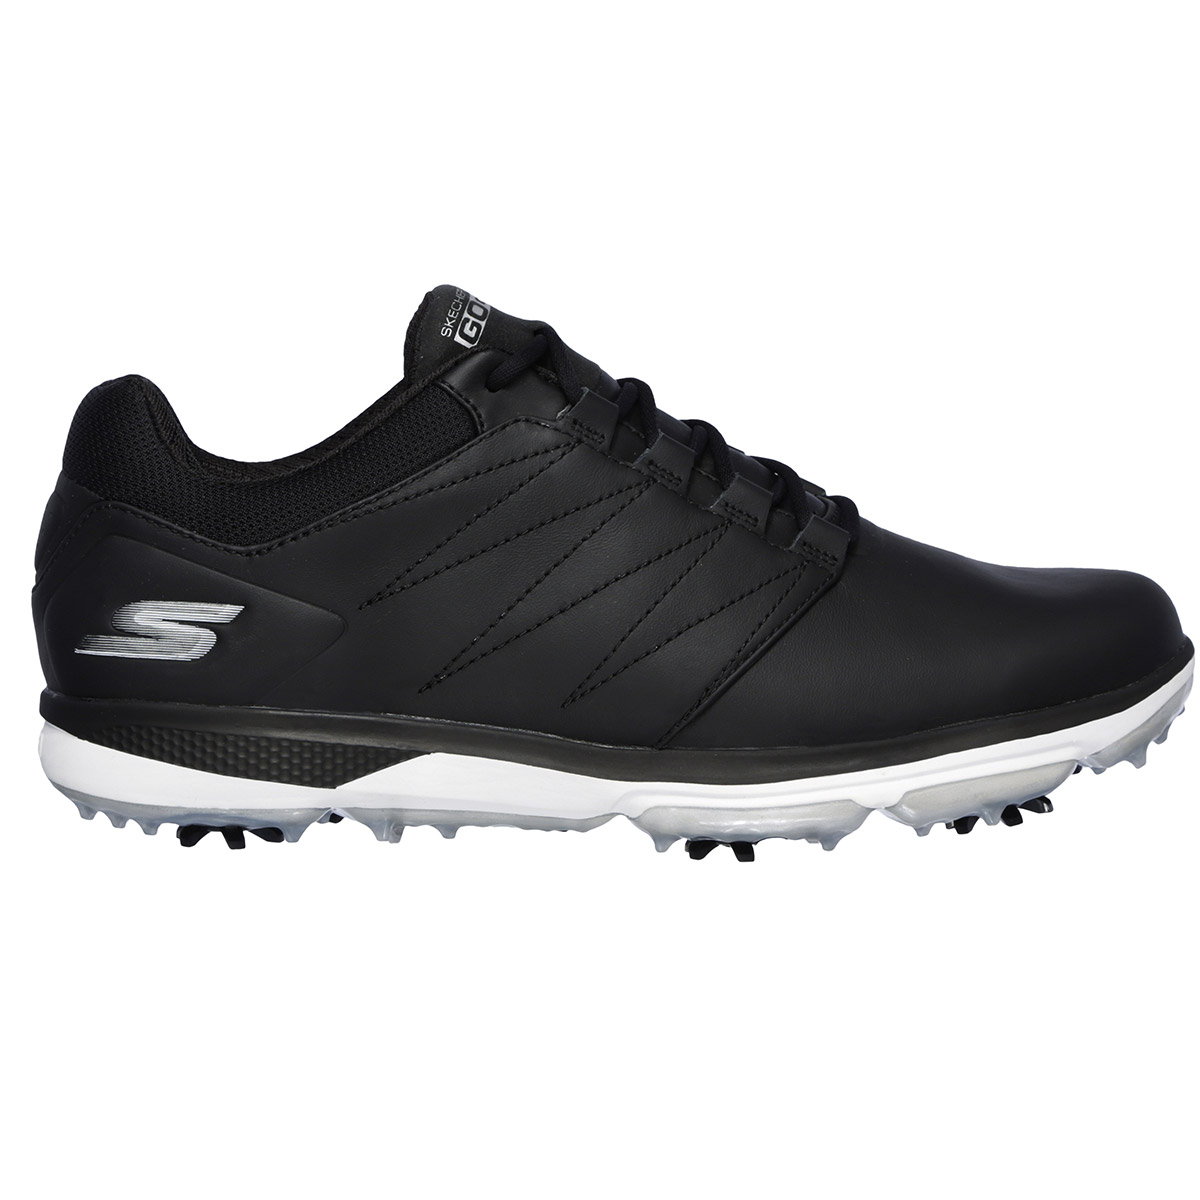 Skechers Mens Go Golf Pro 4 Honors Golf Shoes